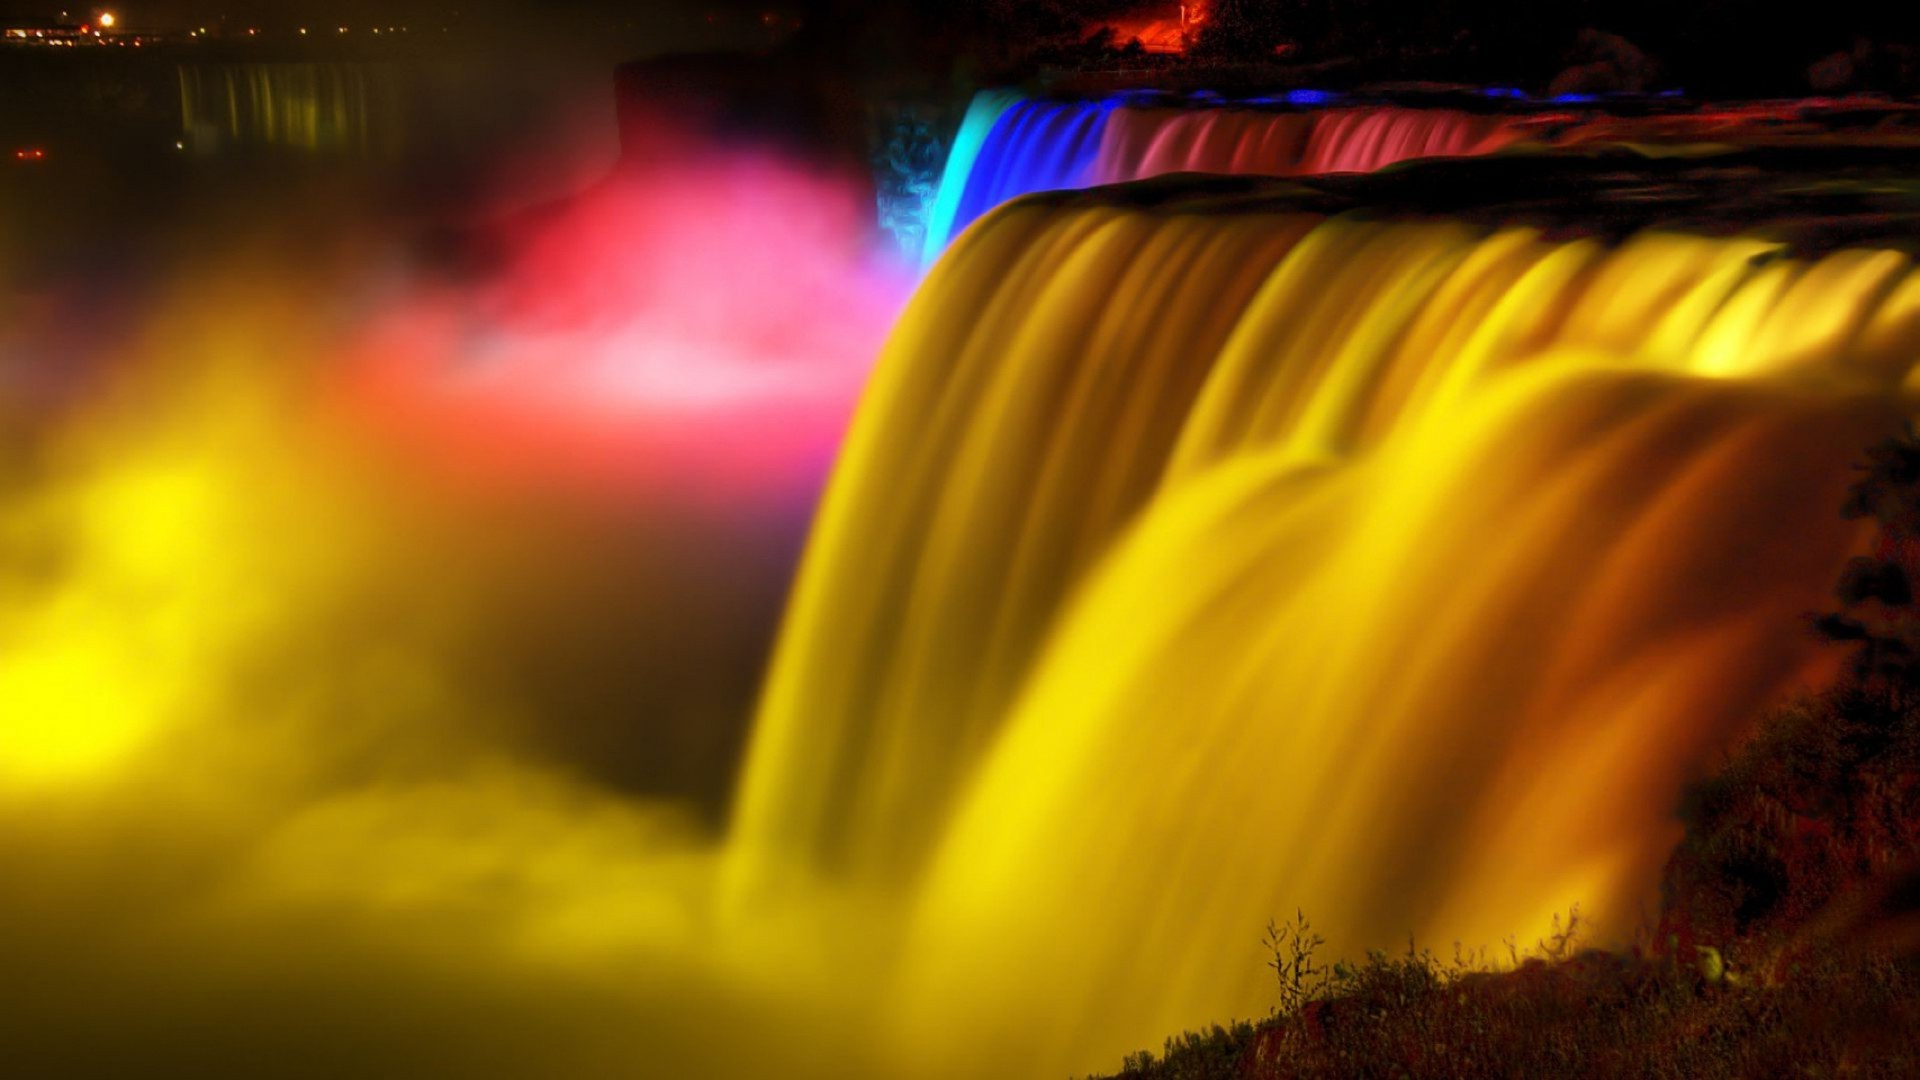 waterfalls blur abstract art flame light texture color luminescence flash motion